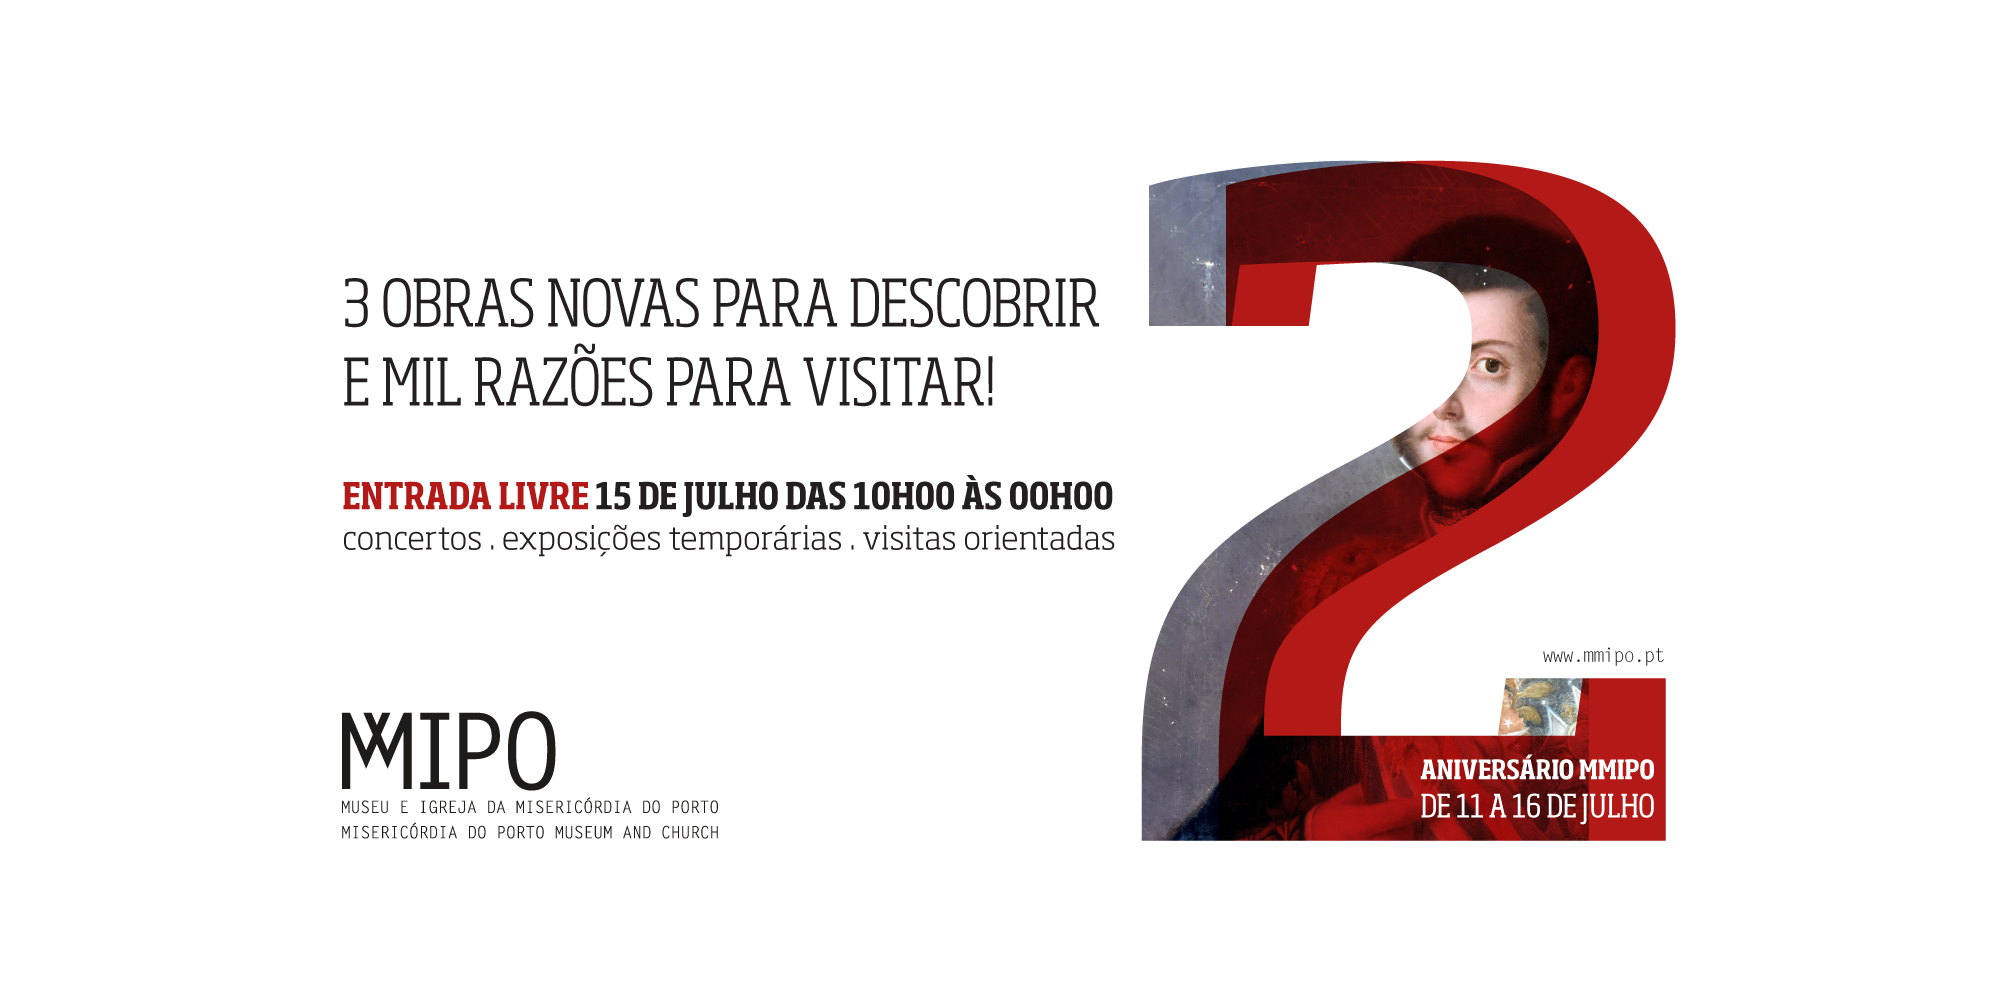 https://www.scmp.pt/assets/misc/img/noticias/2017/20170630%20MMIPO%202%20anos/M-2aniversario-banner-site.png